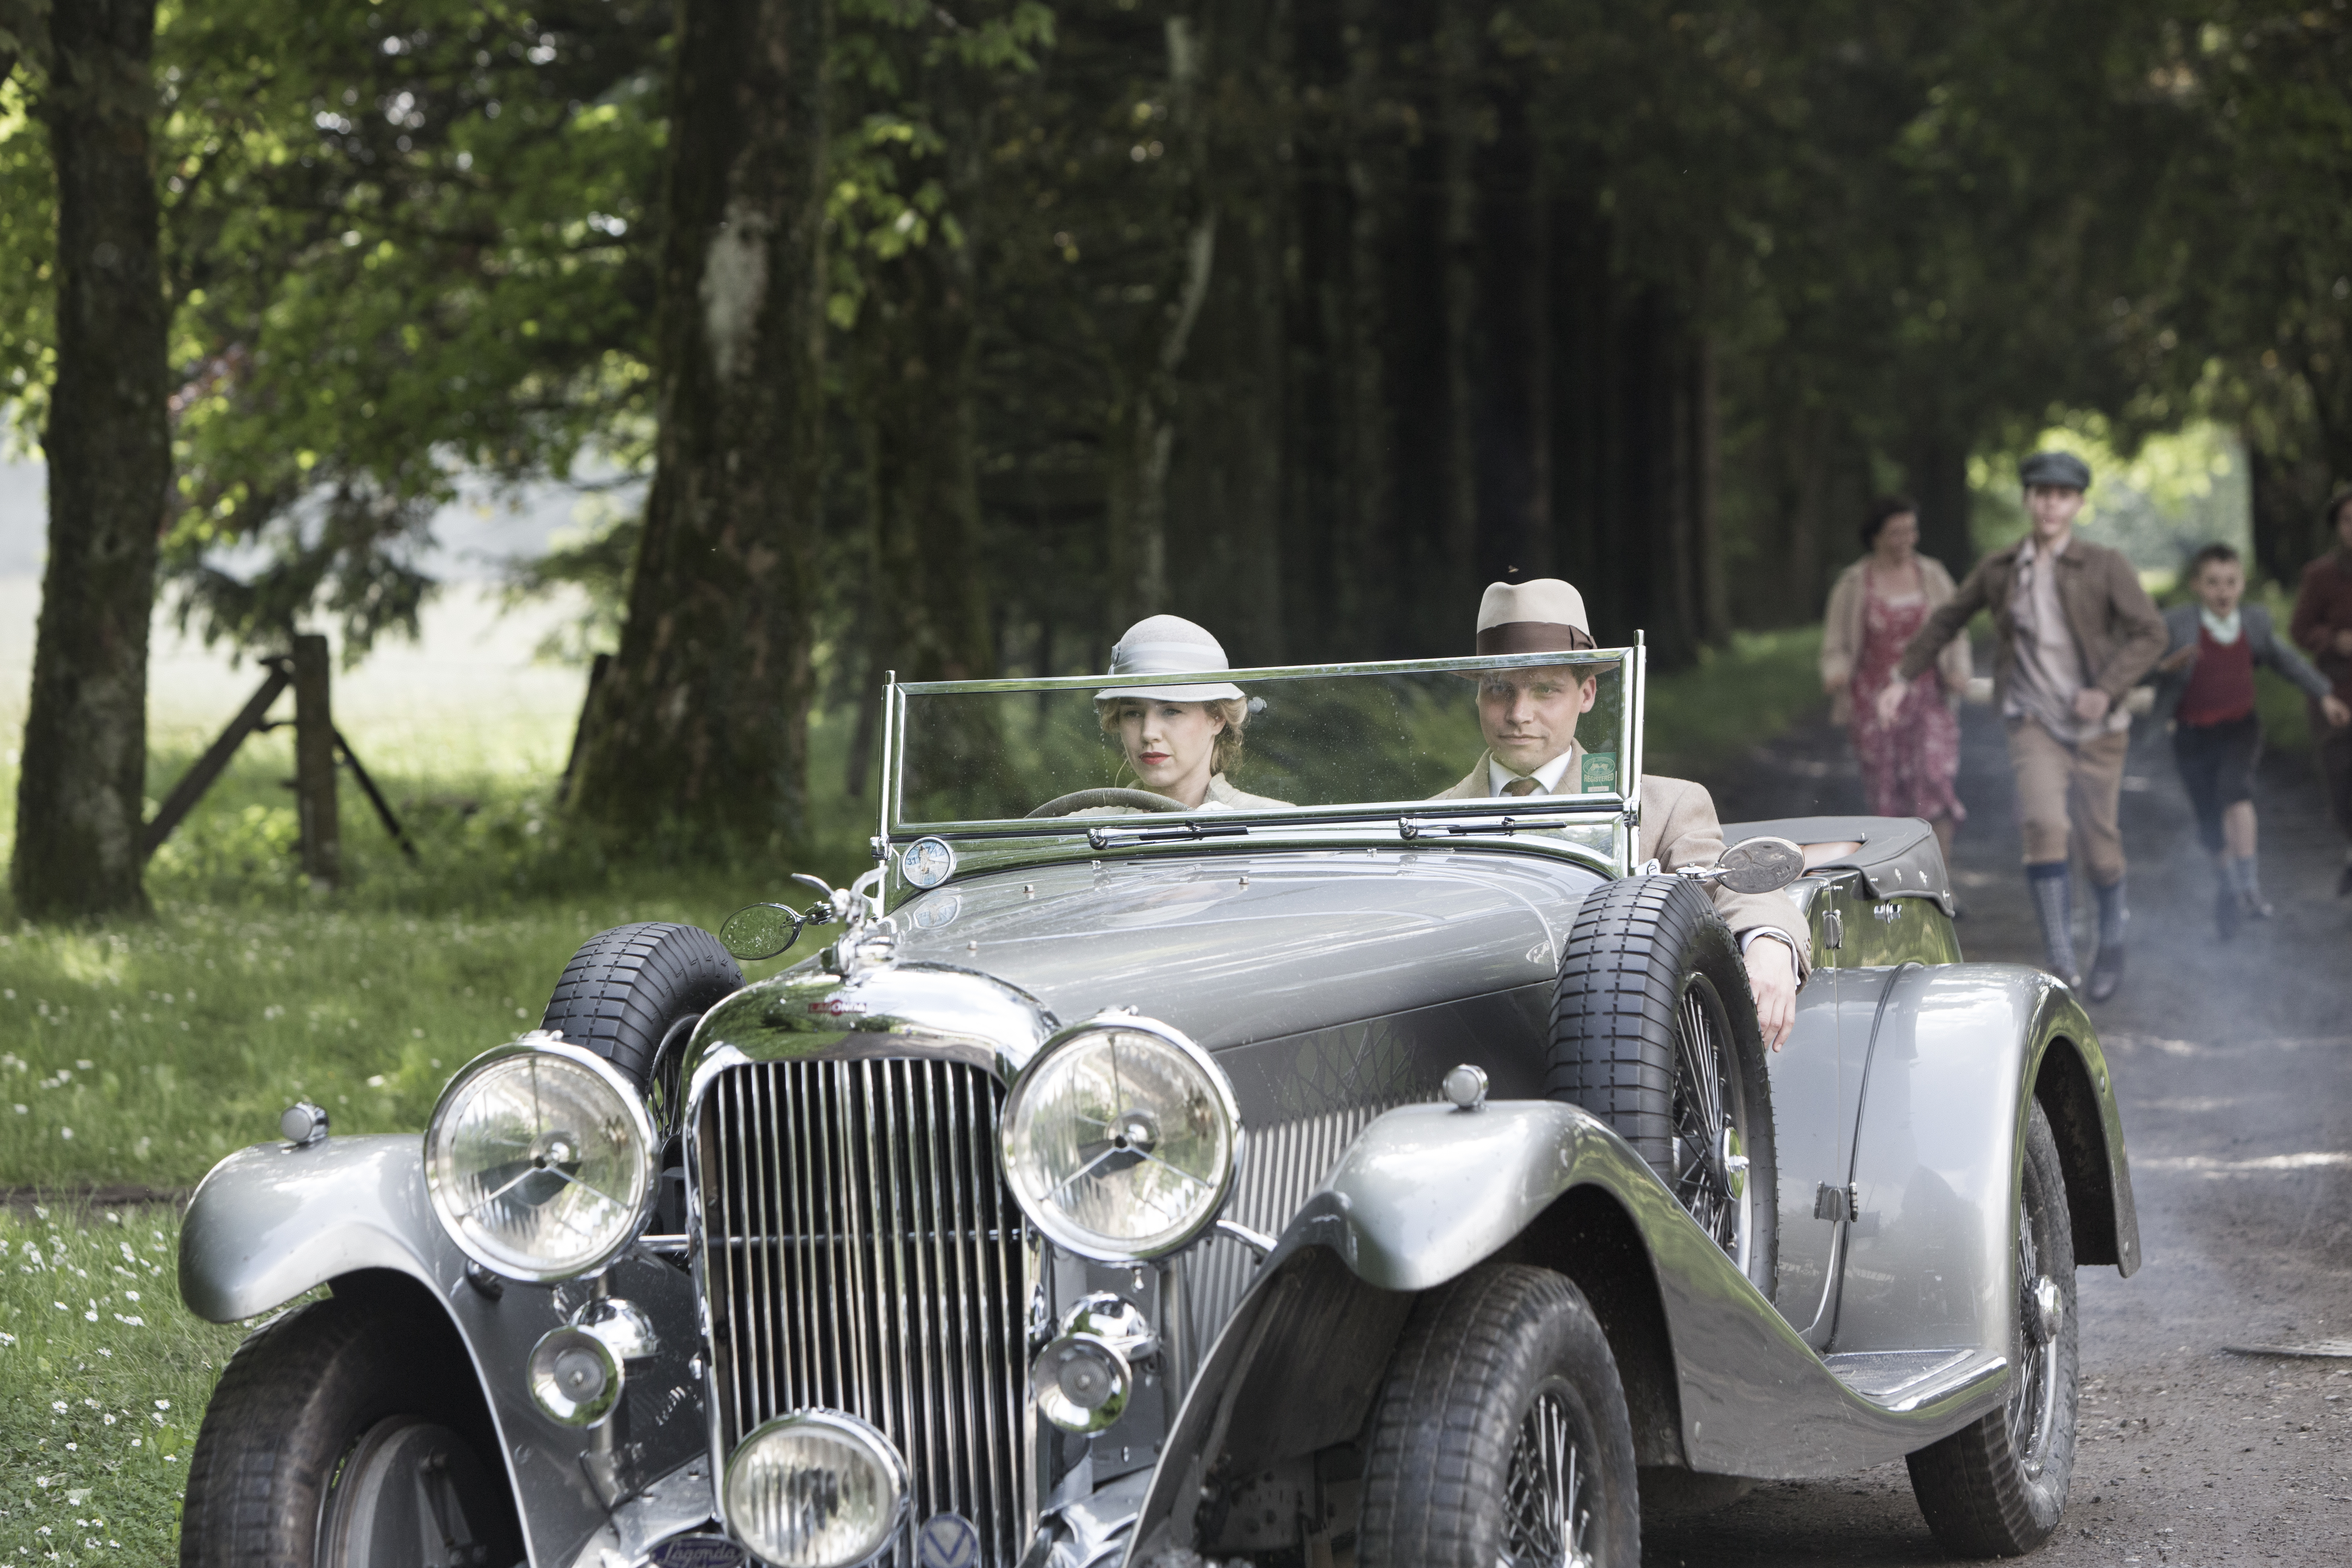 Two people in a 30s-style car